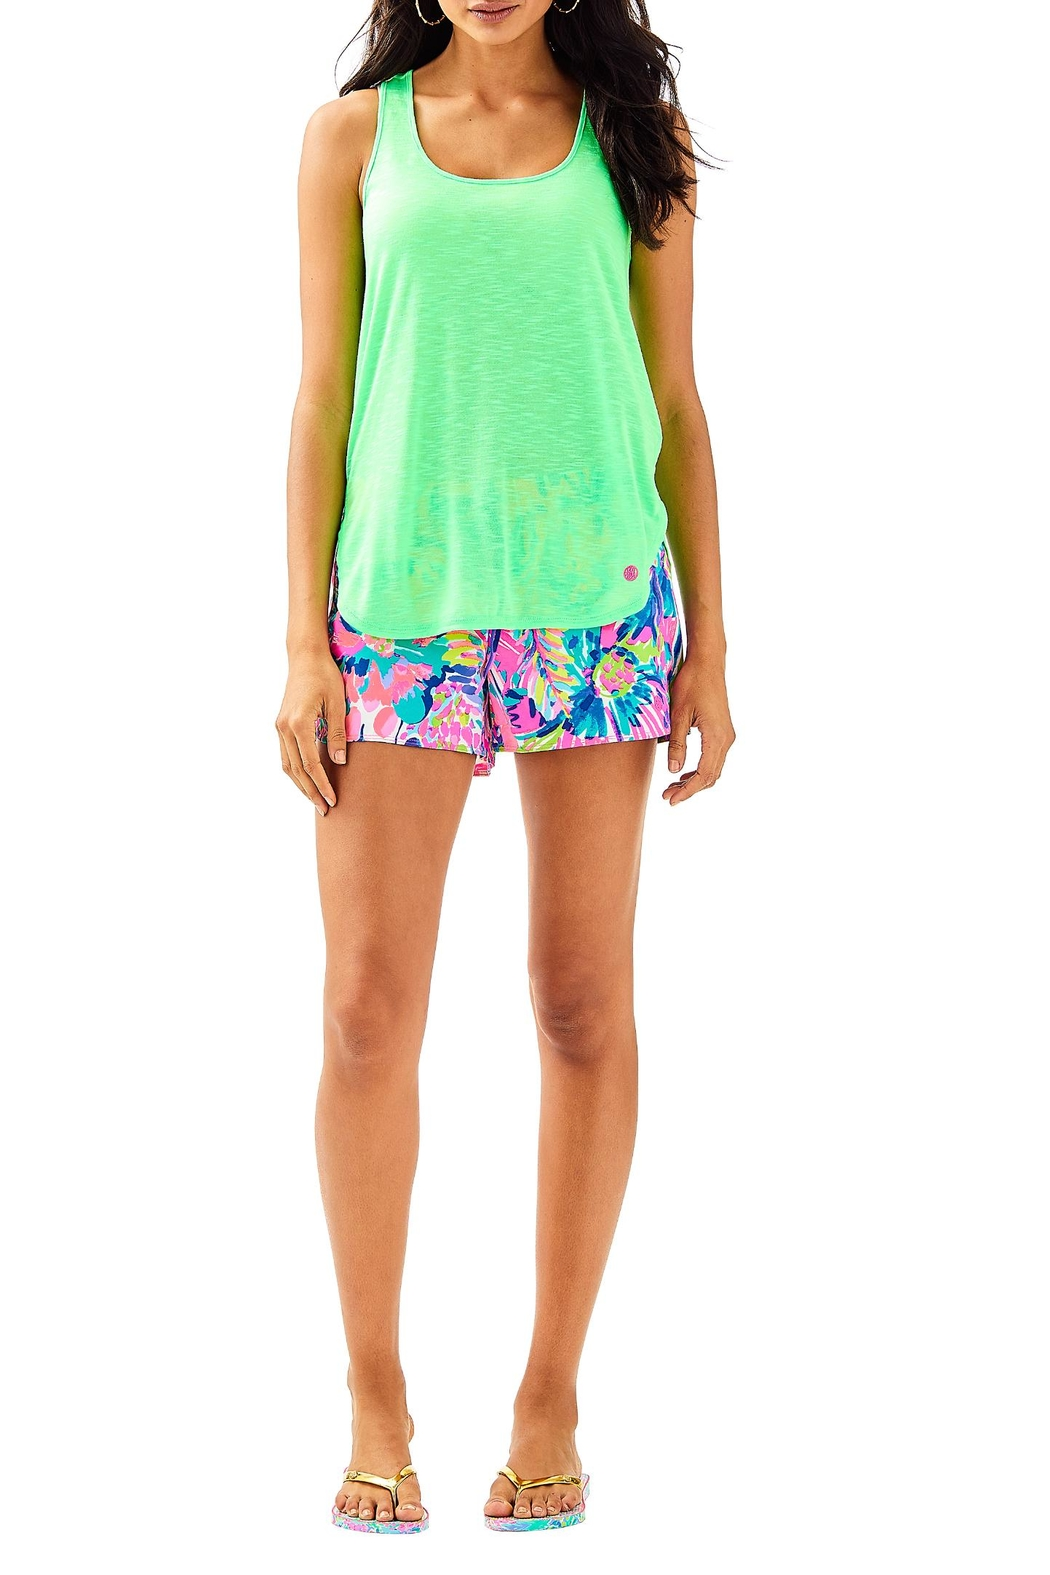 Lilly Pulitzer Luxletic Kai Tank - Side Cropped Image